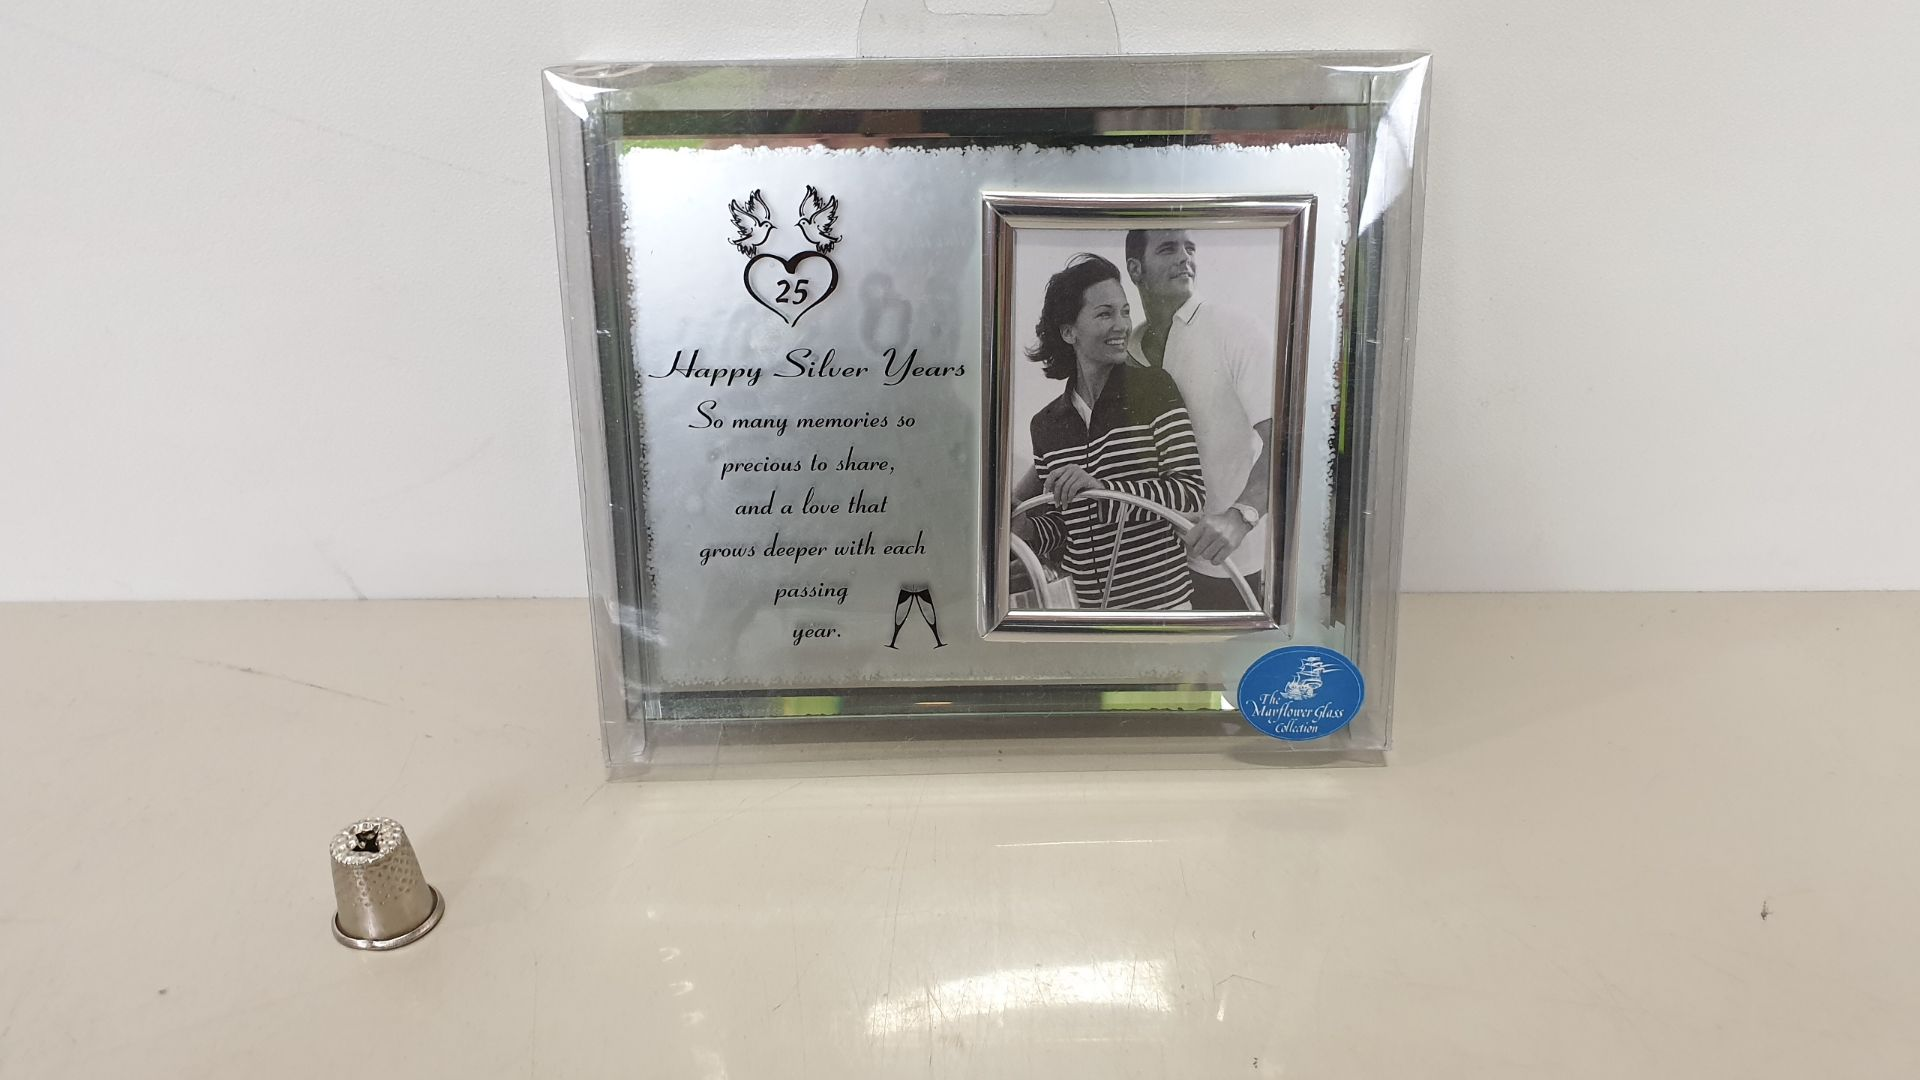 Lot 641 - 144 X BRAND NEW 'THE MAYFLOWER GLASS COLLECTION' SILVER ANNIVERSARY FRAME 'HAPPY SILVER YEARS' -